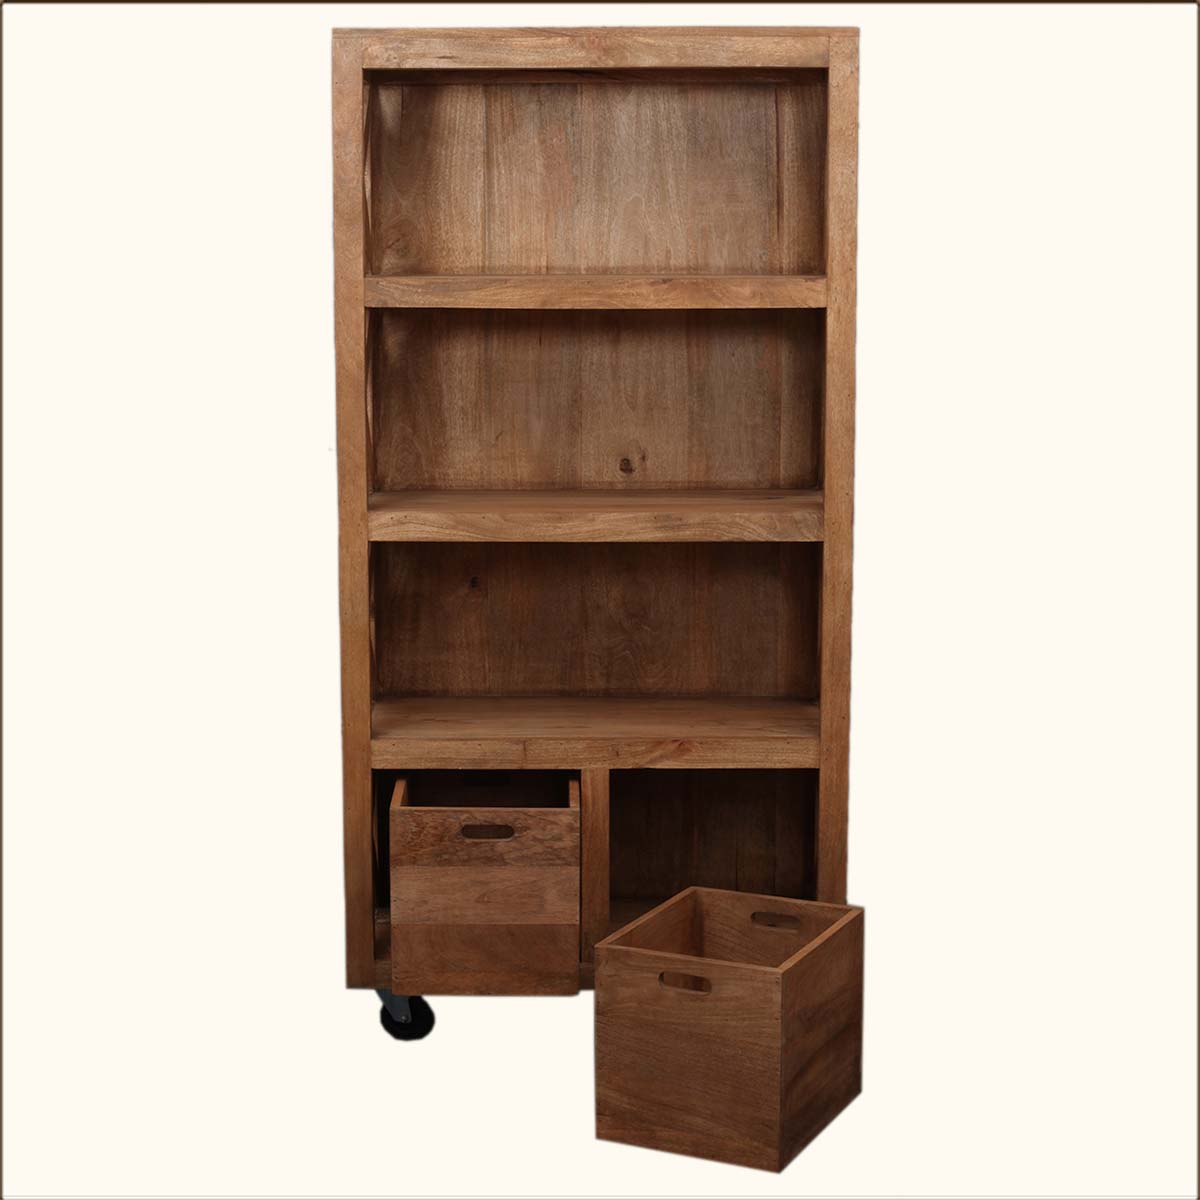 Image of: Rolling Bookcase Image